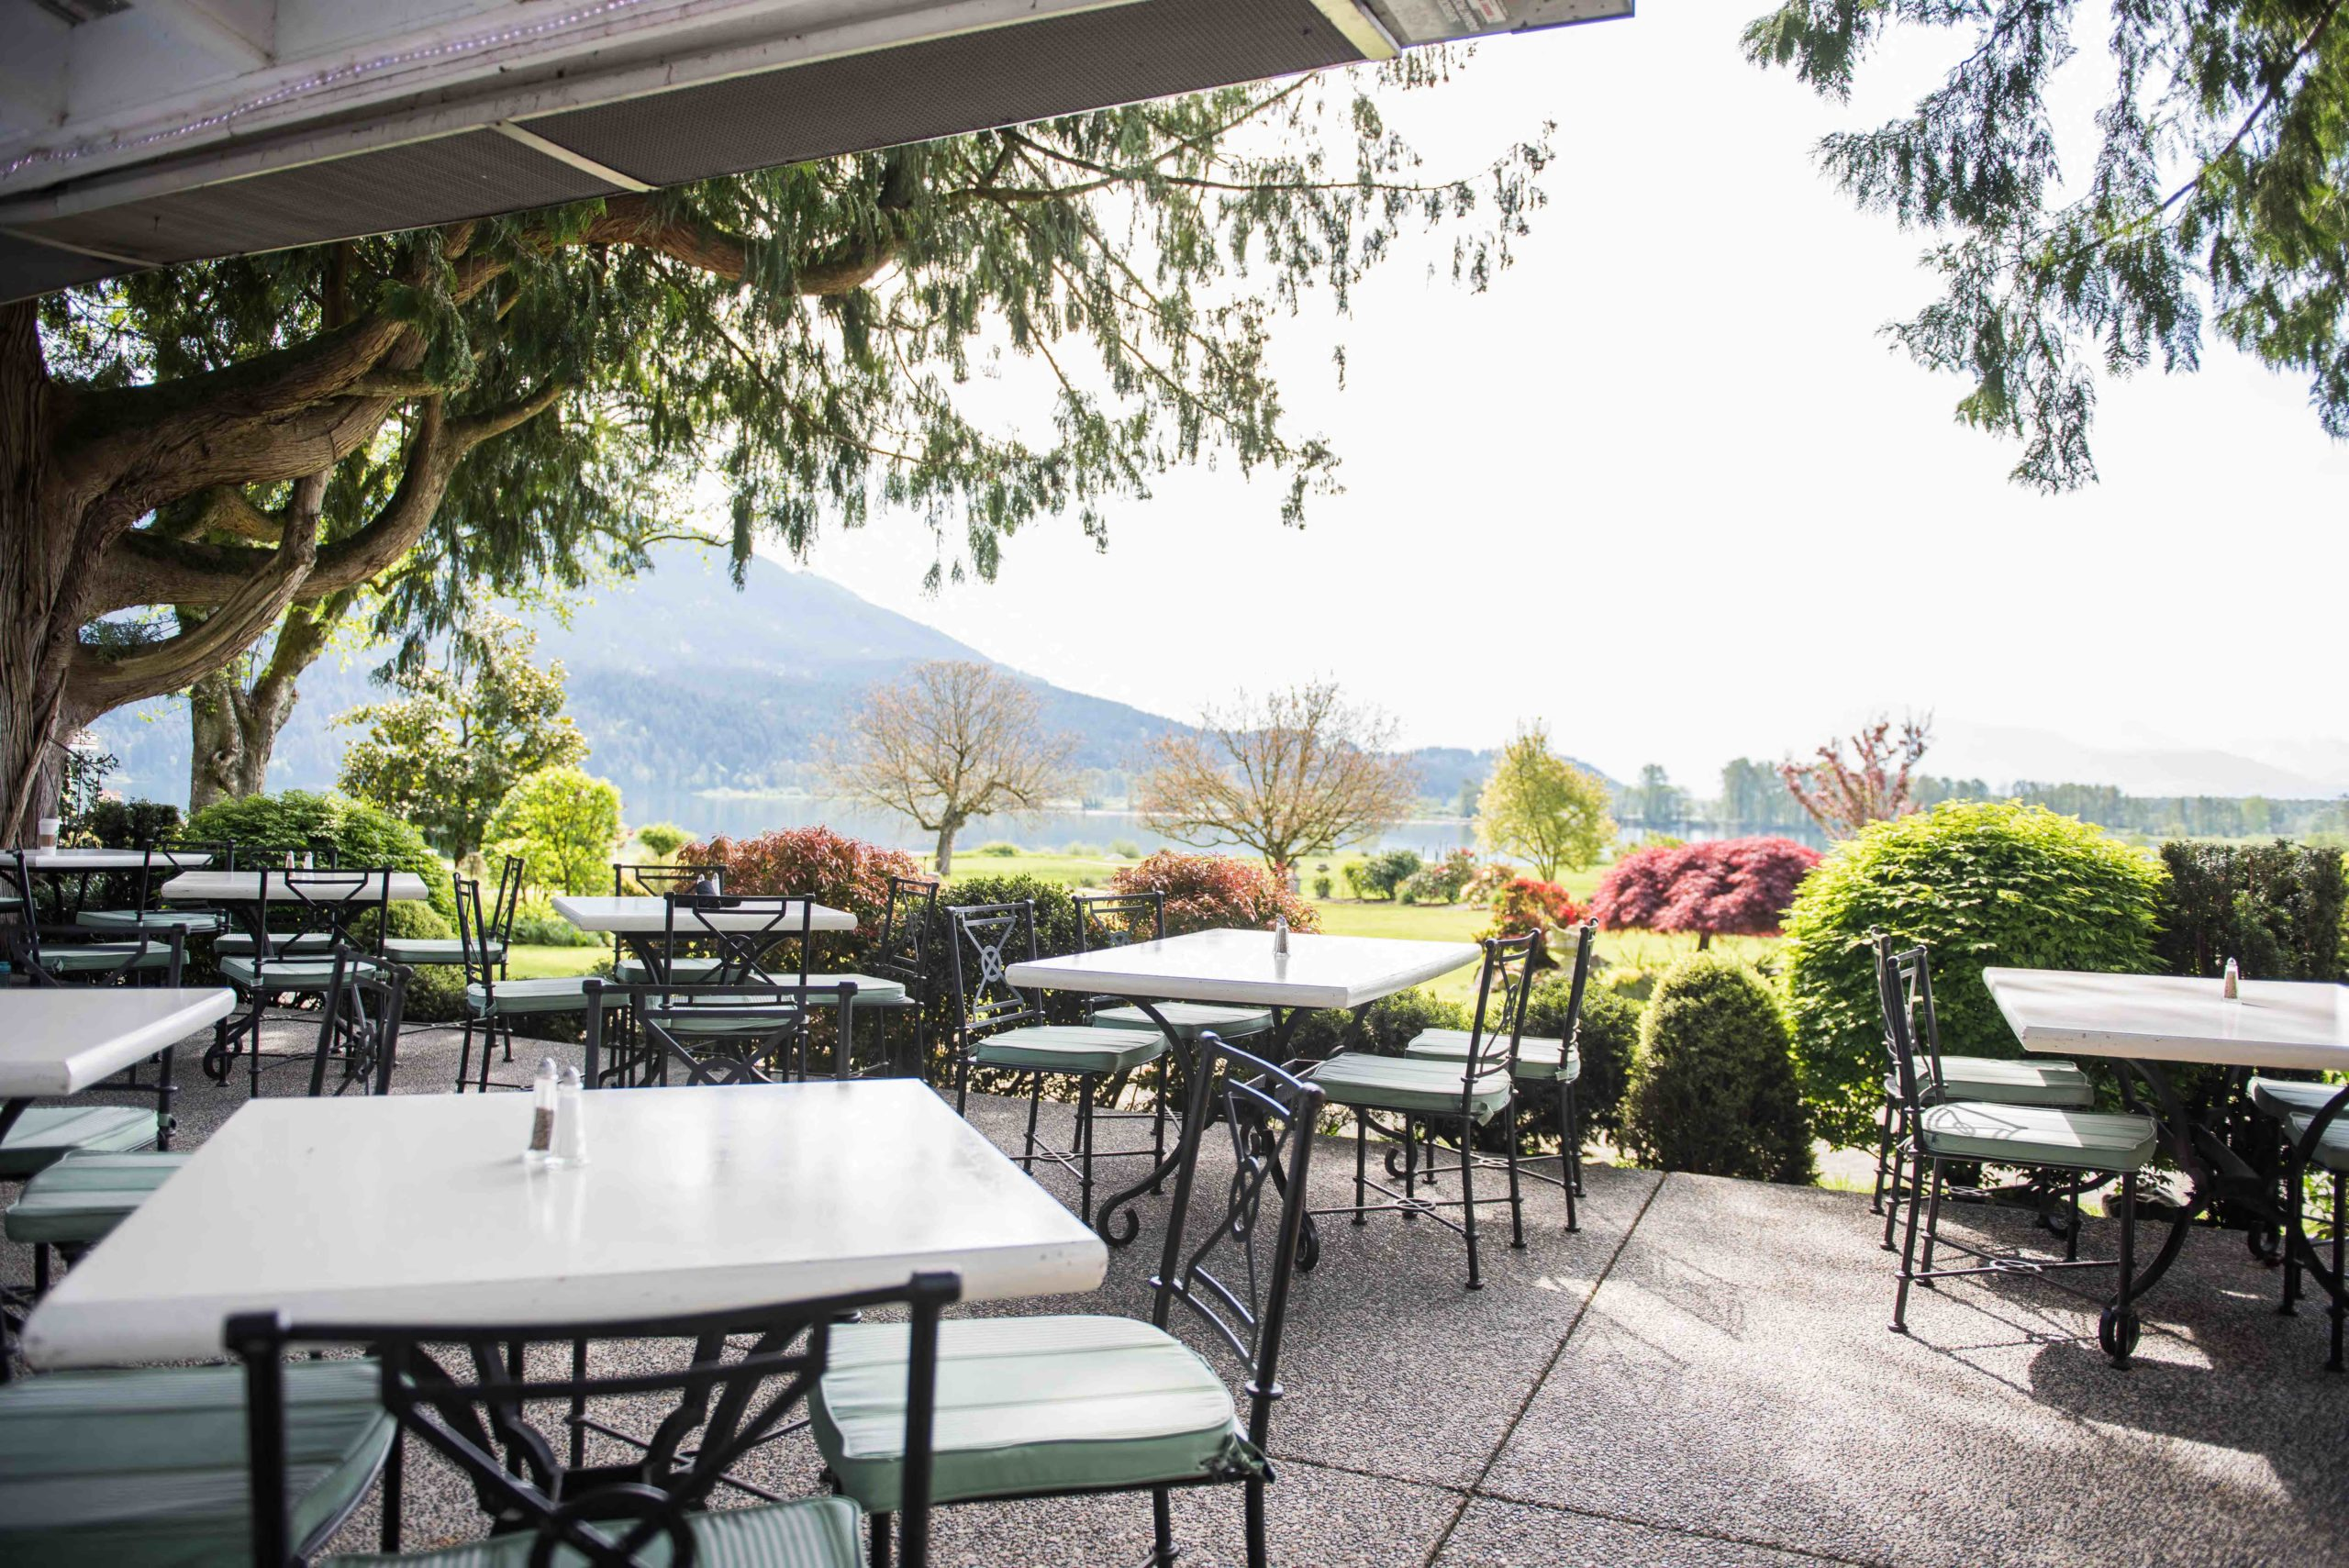 WIN 2 Rounds of Golf + Lunch & Check this List of the Best Summer Patios